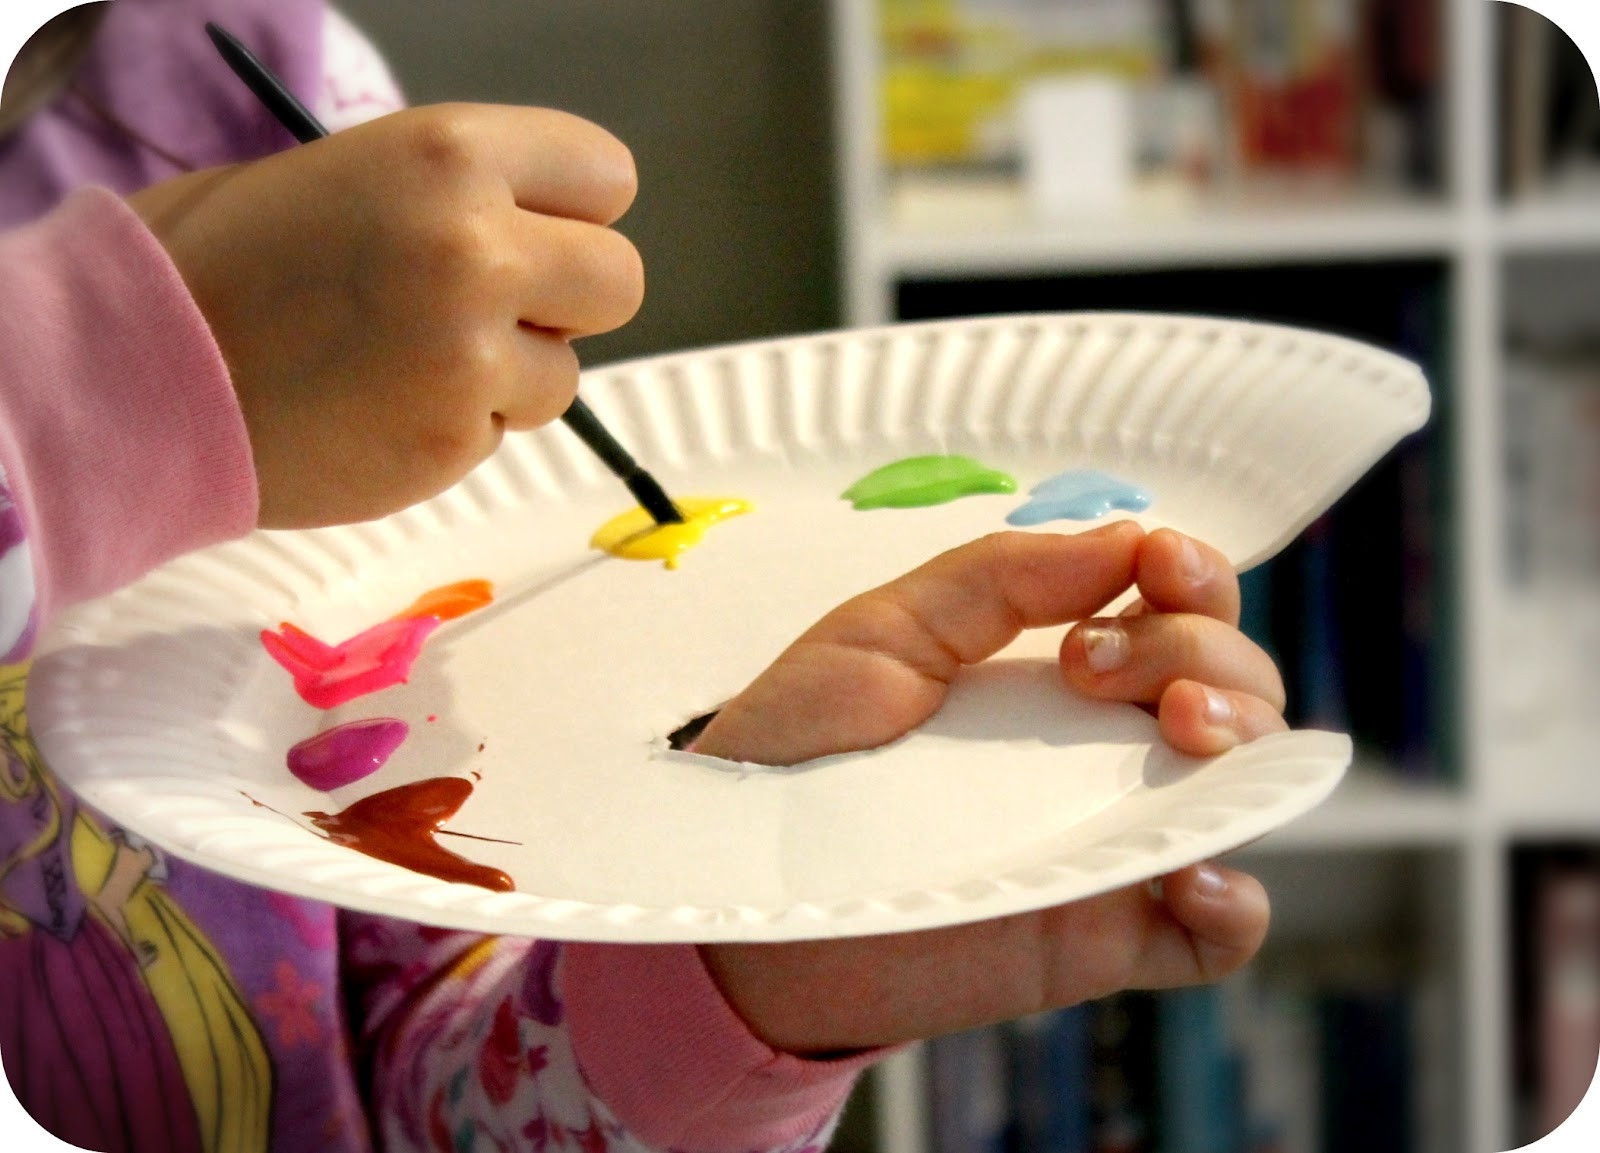 Best ideas about DIY Kids Paint . Save or Pin DiY Project Paper Plate Painter's Palette for Kids Now.